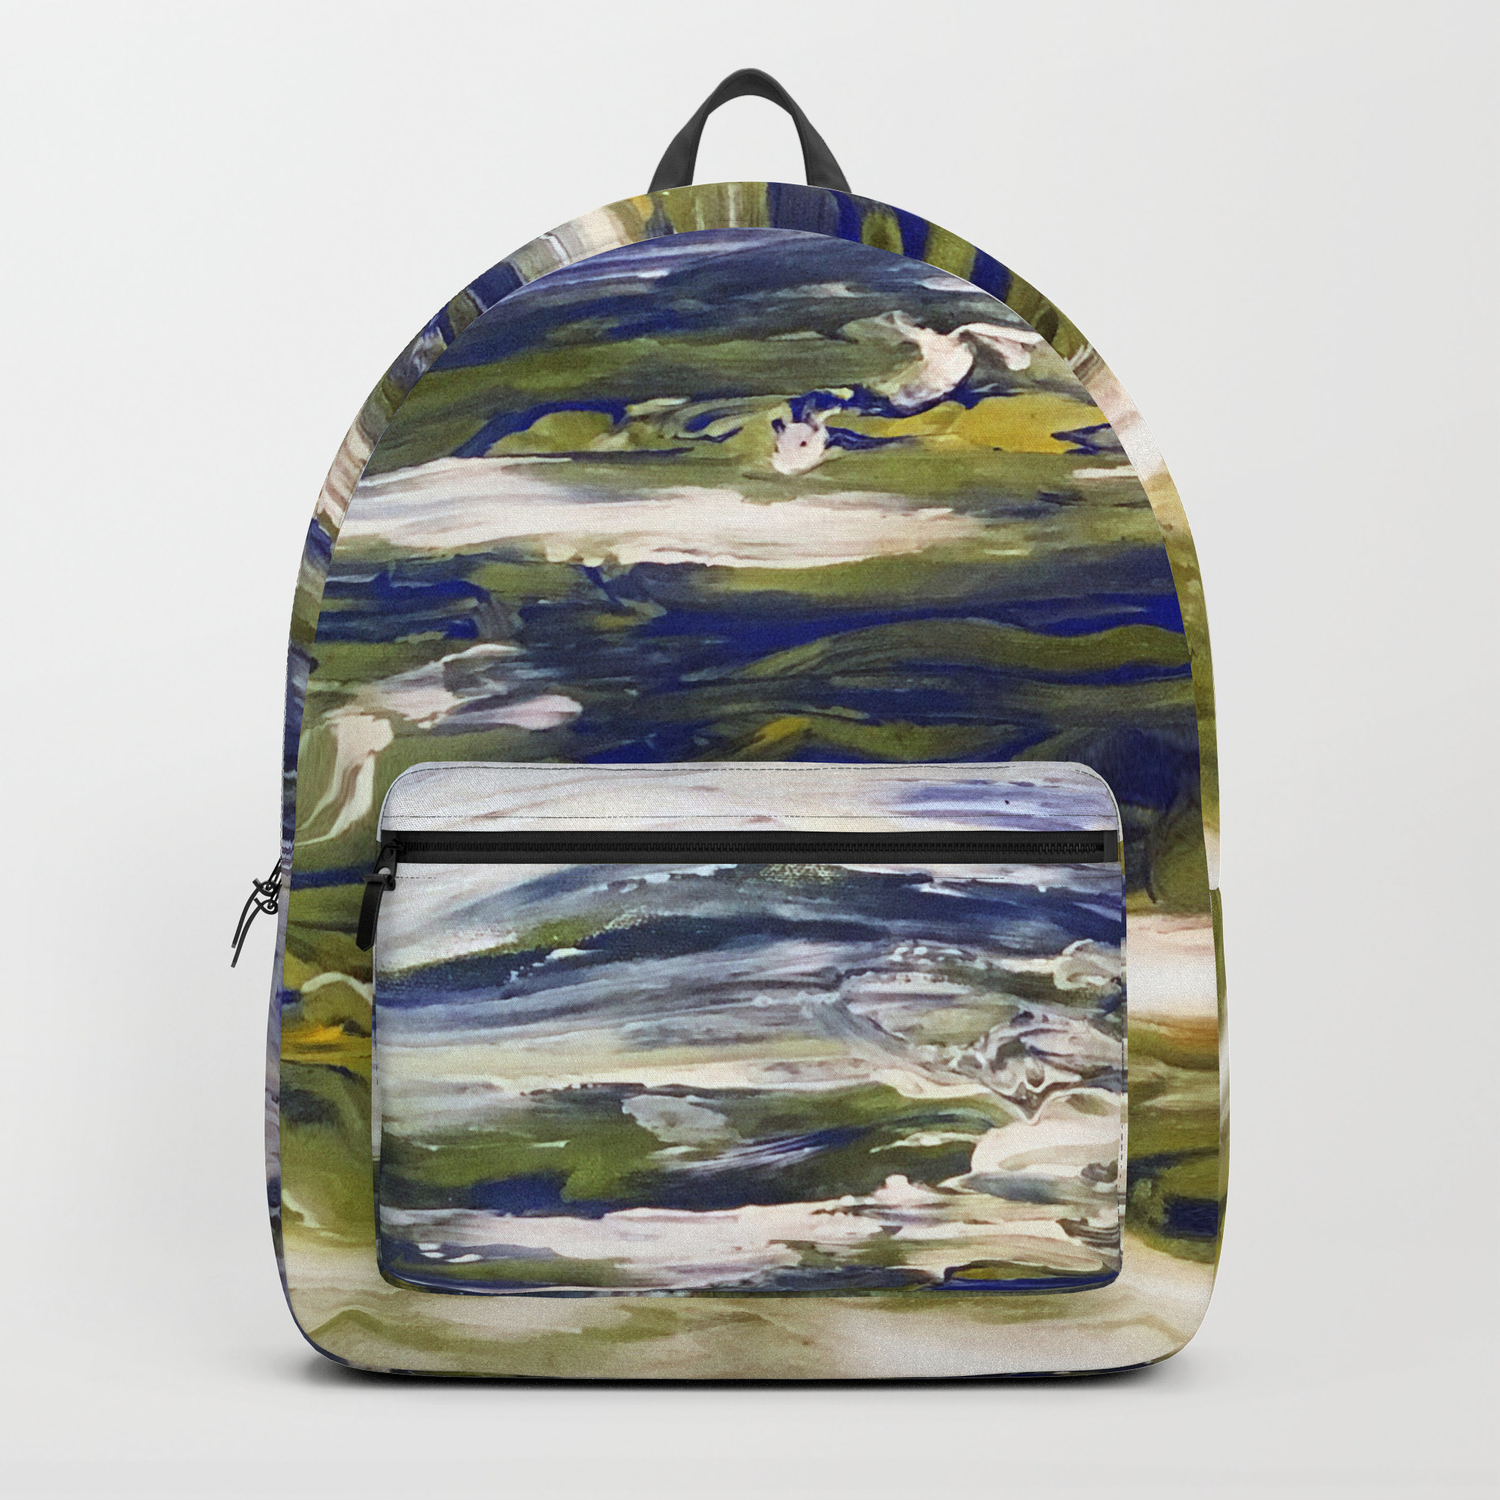 Earth Scape Backpack by apinchofyou